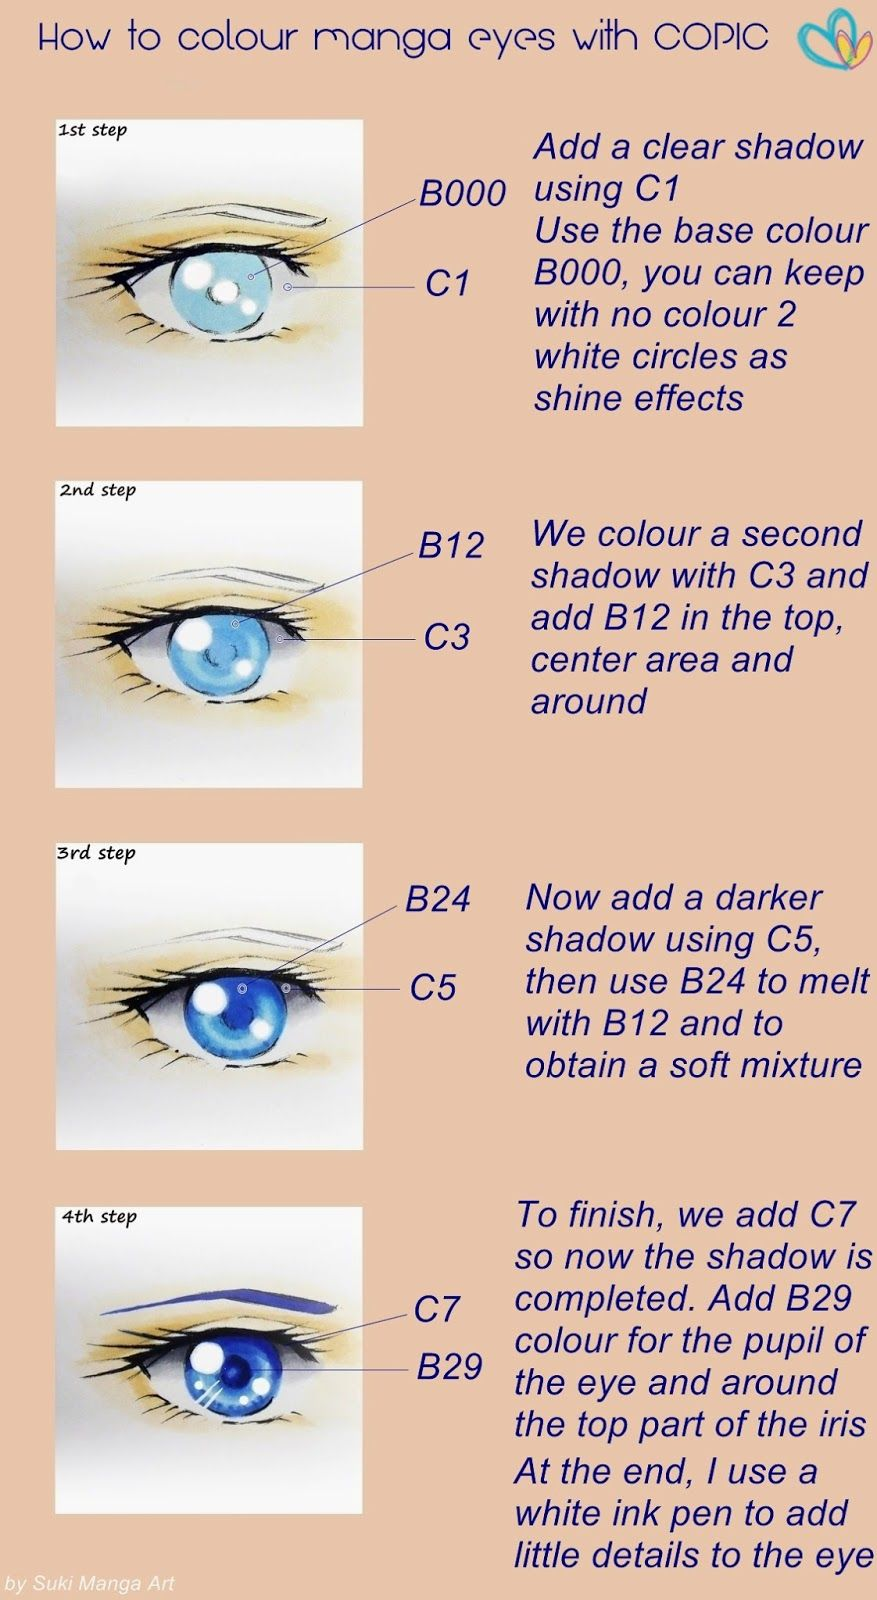 Tutorial How To Colour Manga Eyes With Copic By Suki Manga Art Copic Marker Art Copic Markers Tutorial Copic Sketch Markers